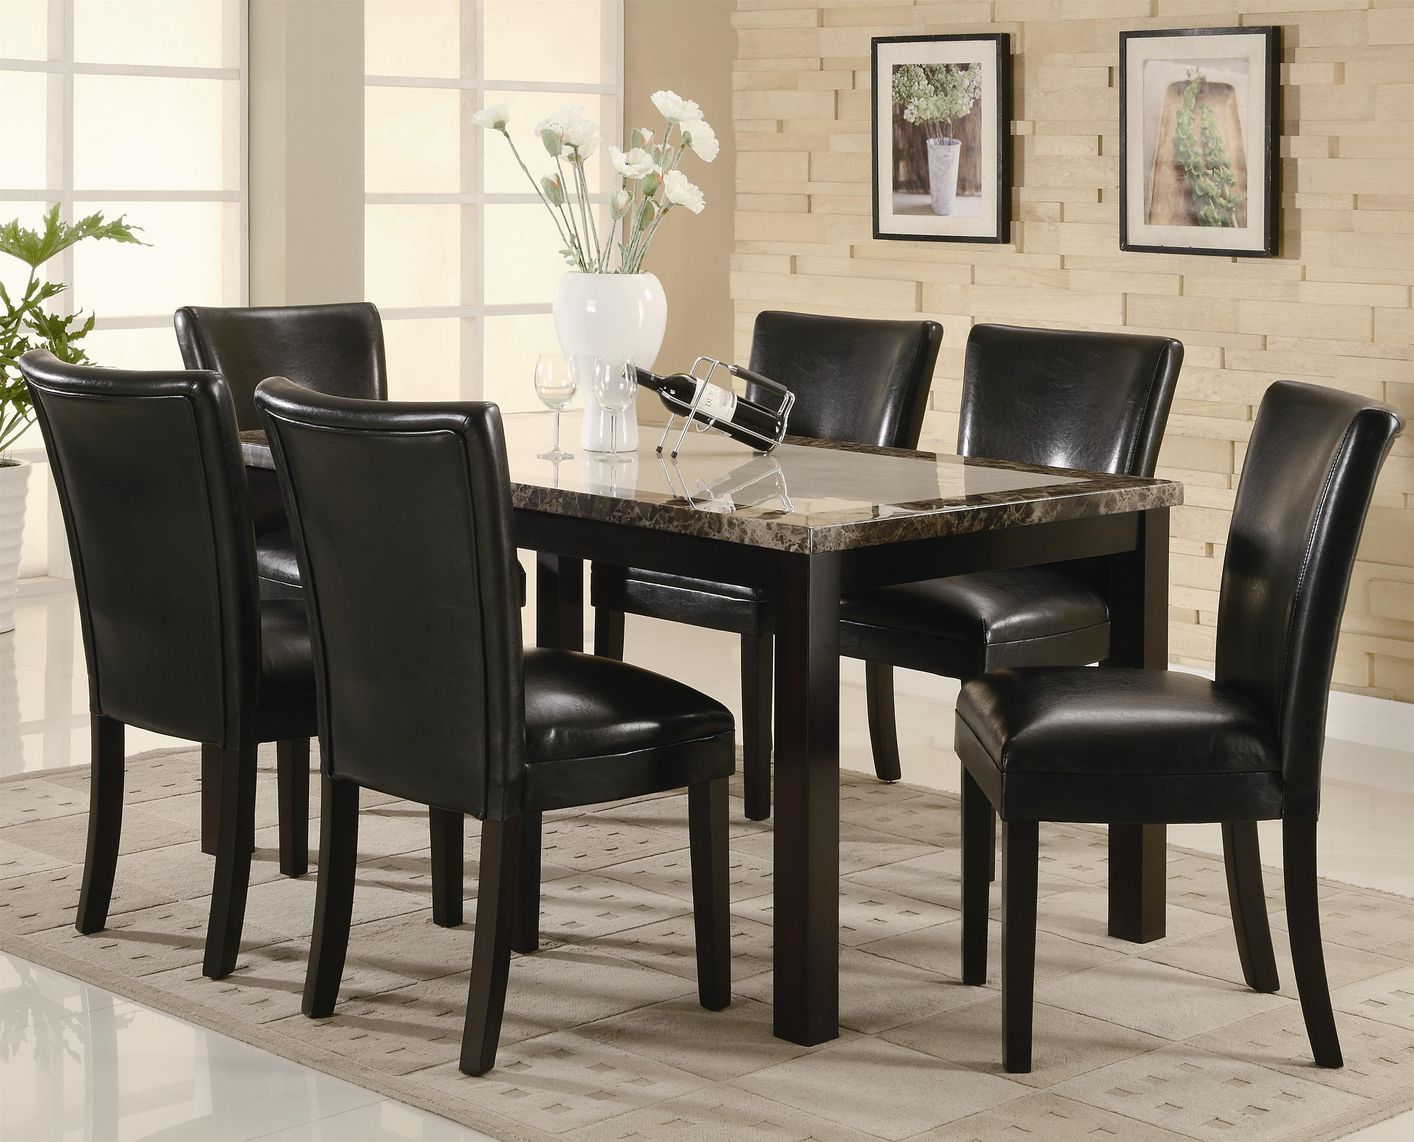 Merveilleux Carter Dark Brown Wood And Marble Dining Table Set